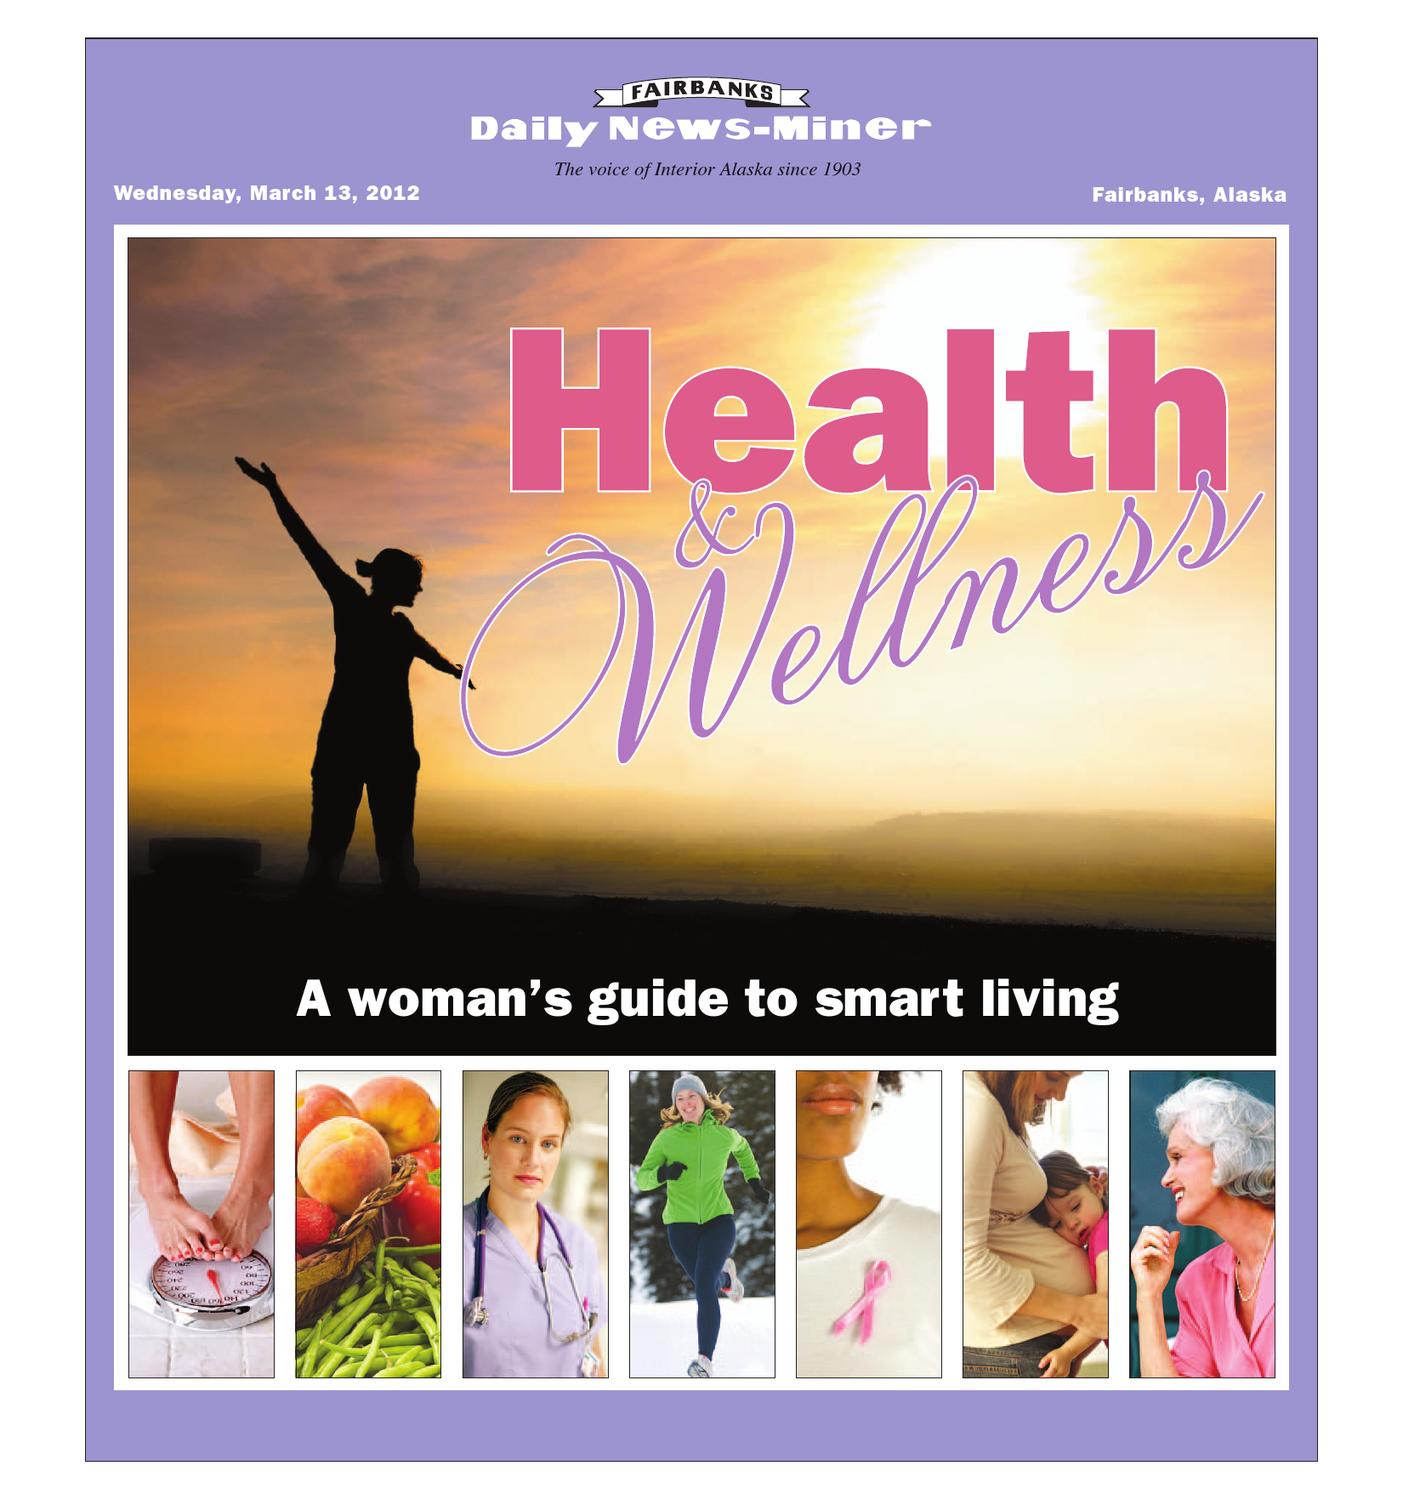 Issuu Health And Wellness A Woman 39 S Guide To Smart Living By Fairbanks Daily News Miner